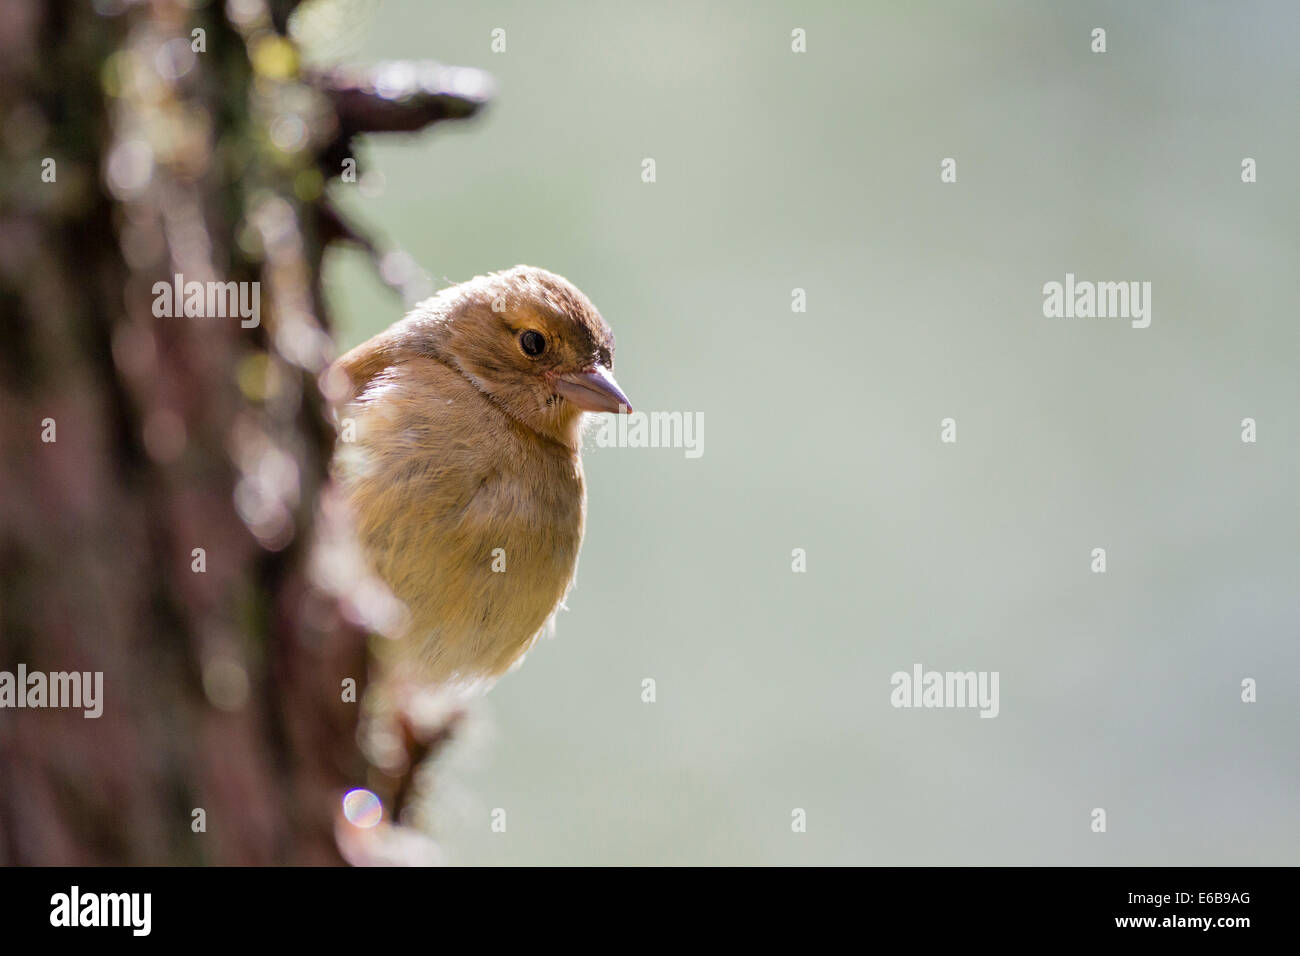 Common chaffinch (Fringilla coelebs) Scotland, UK - Stock Image